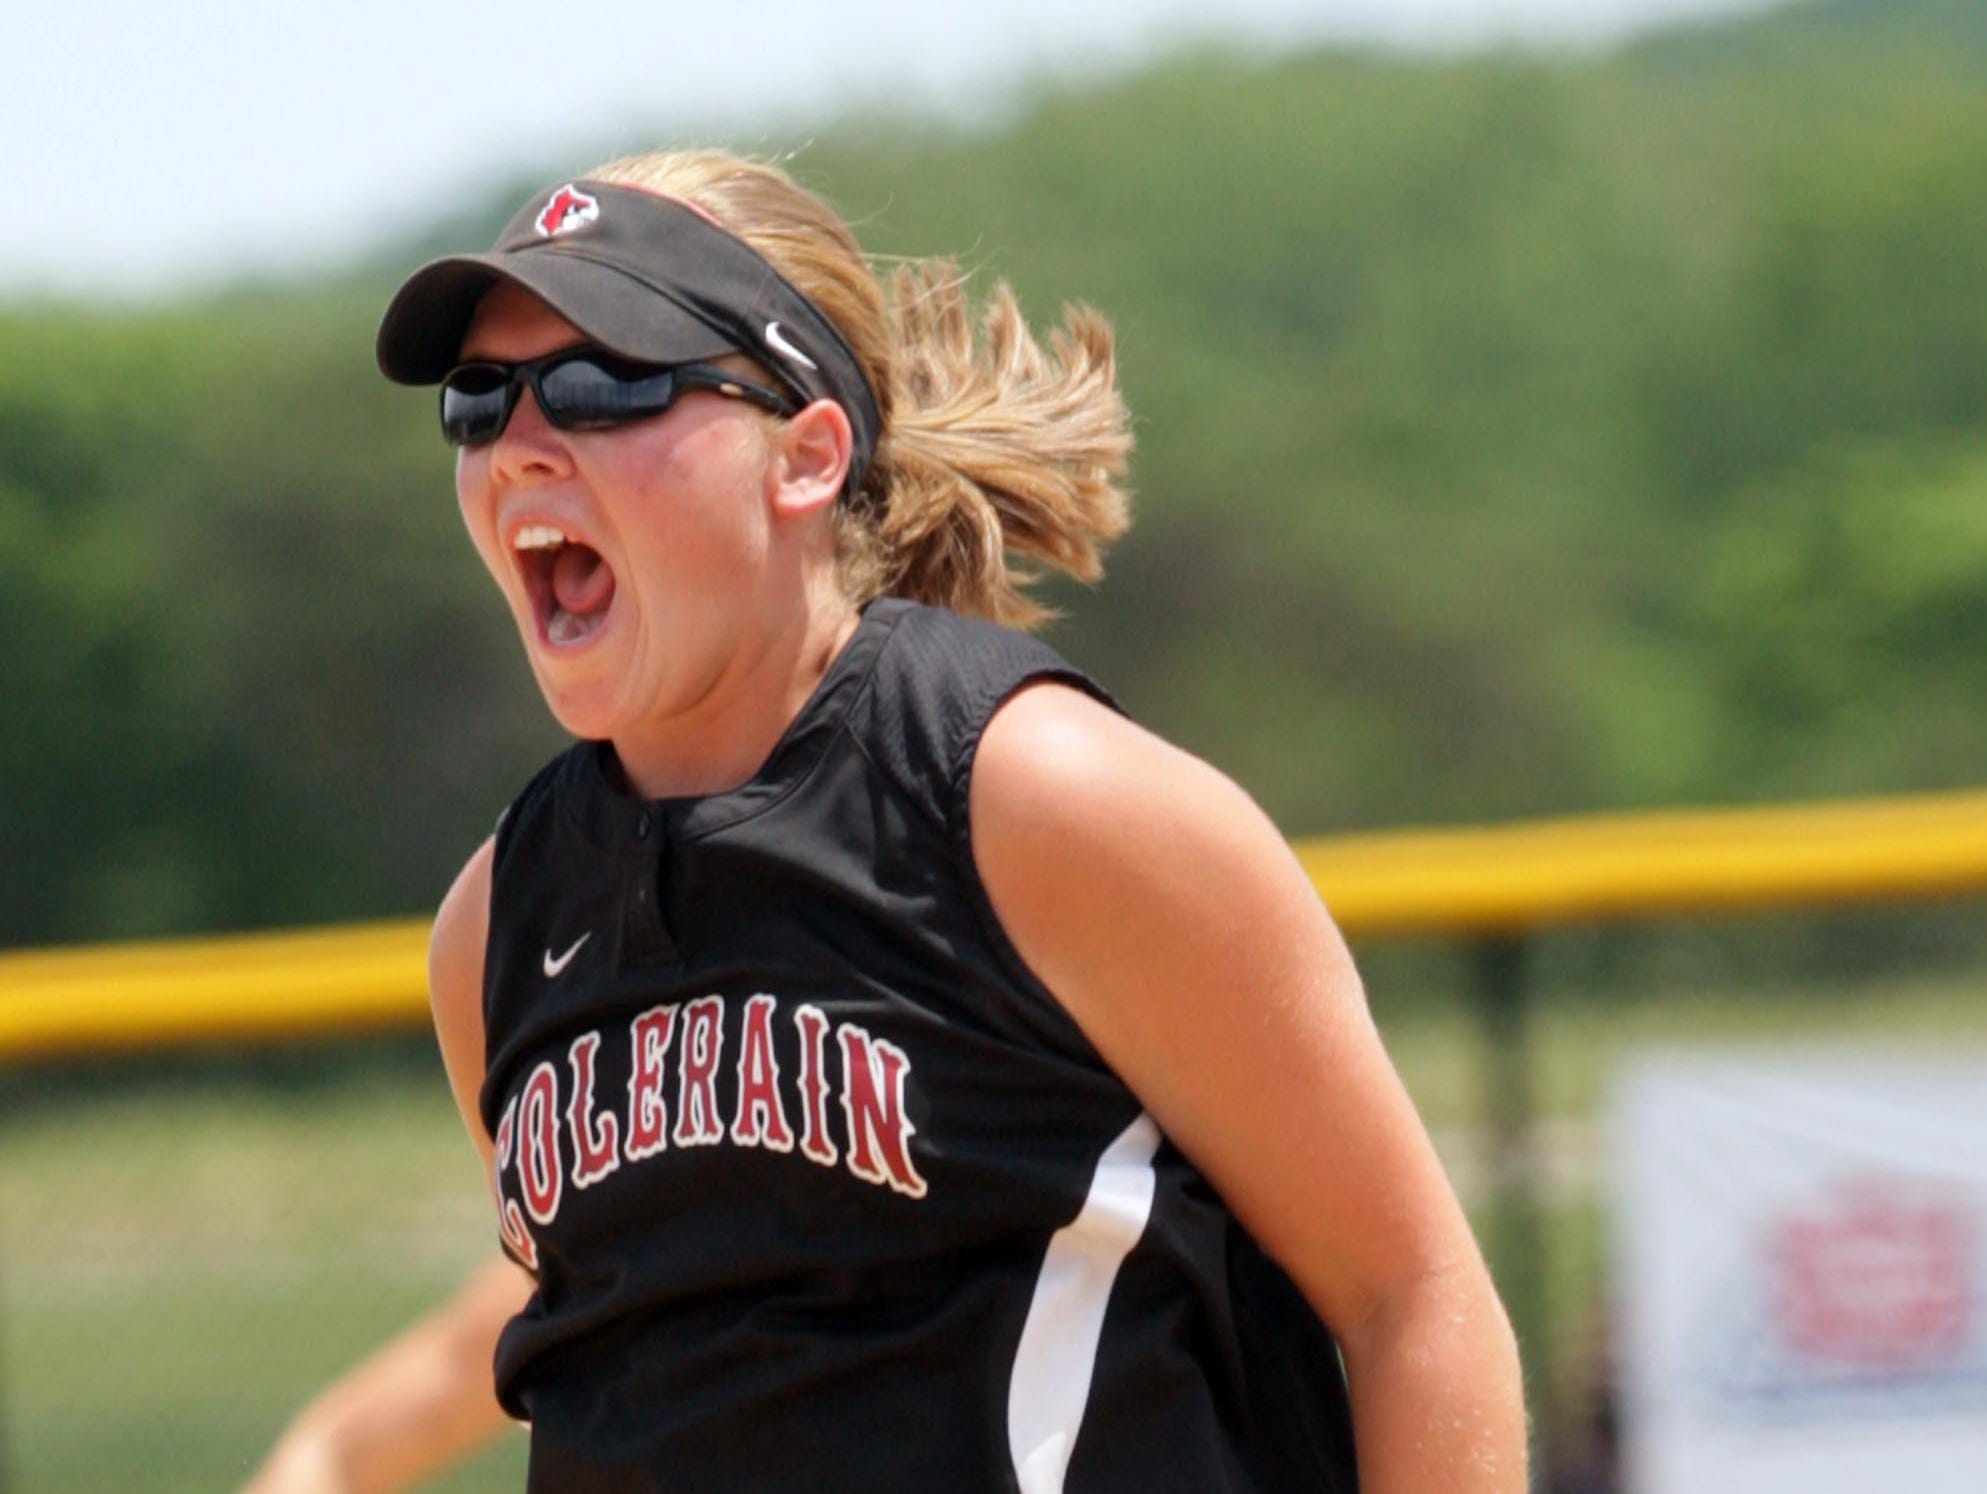 Colerain pitcher Emily Schwaeble jumps in the air after striking out the last batter to complete a perfect game in a Division I regional final May 30, 2009. Schwaeble was named head softball coach at Colerain on June 30.